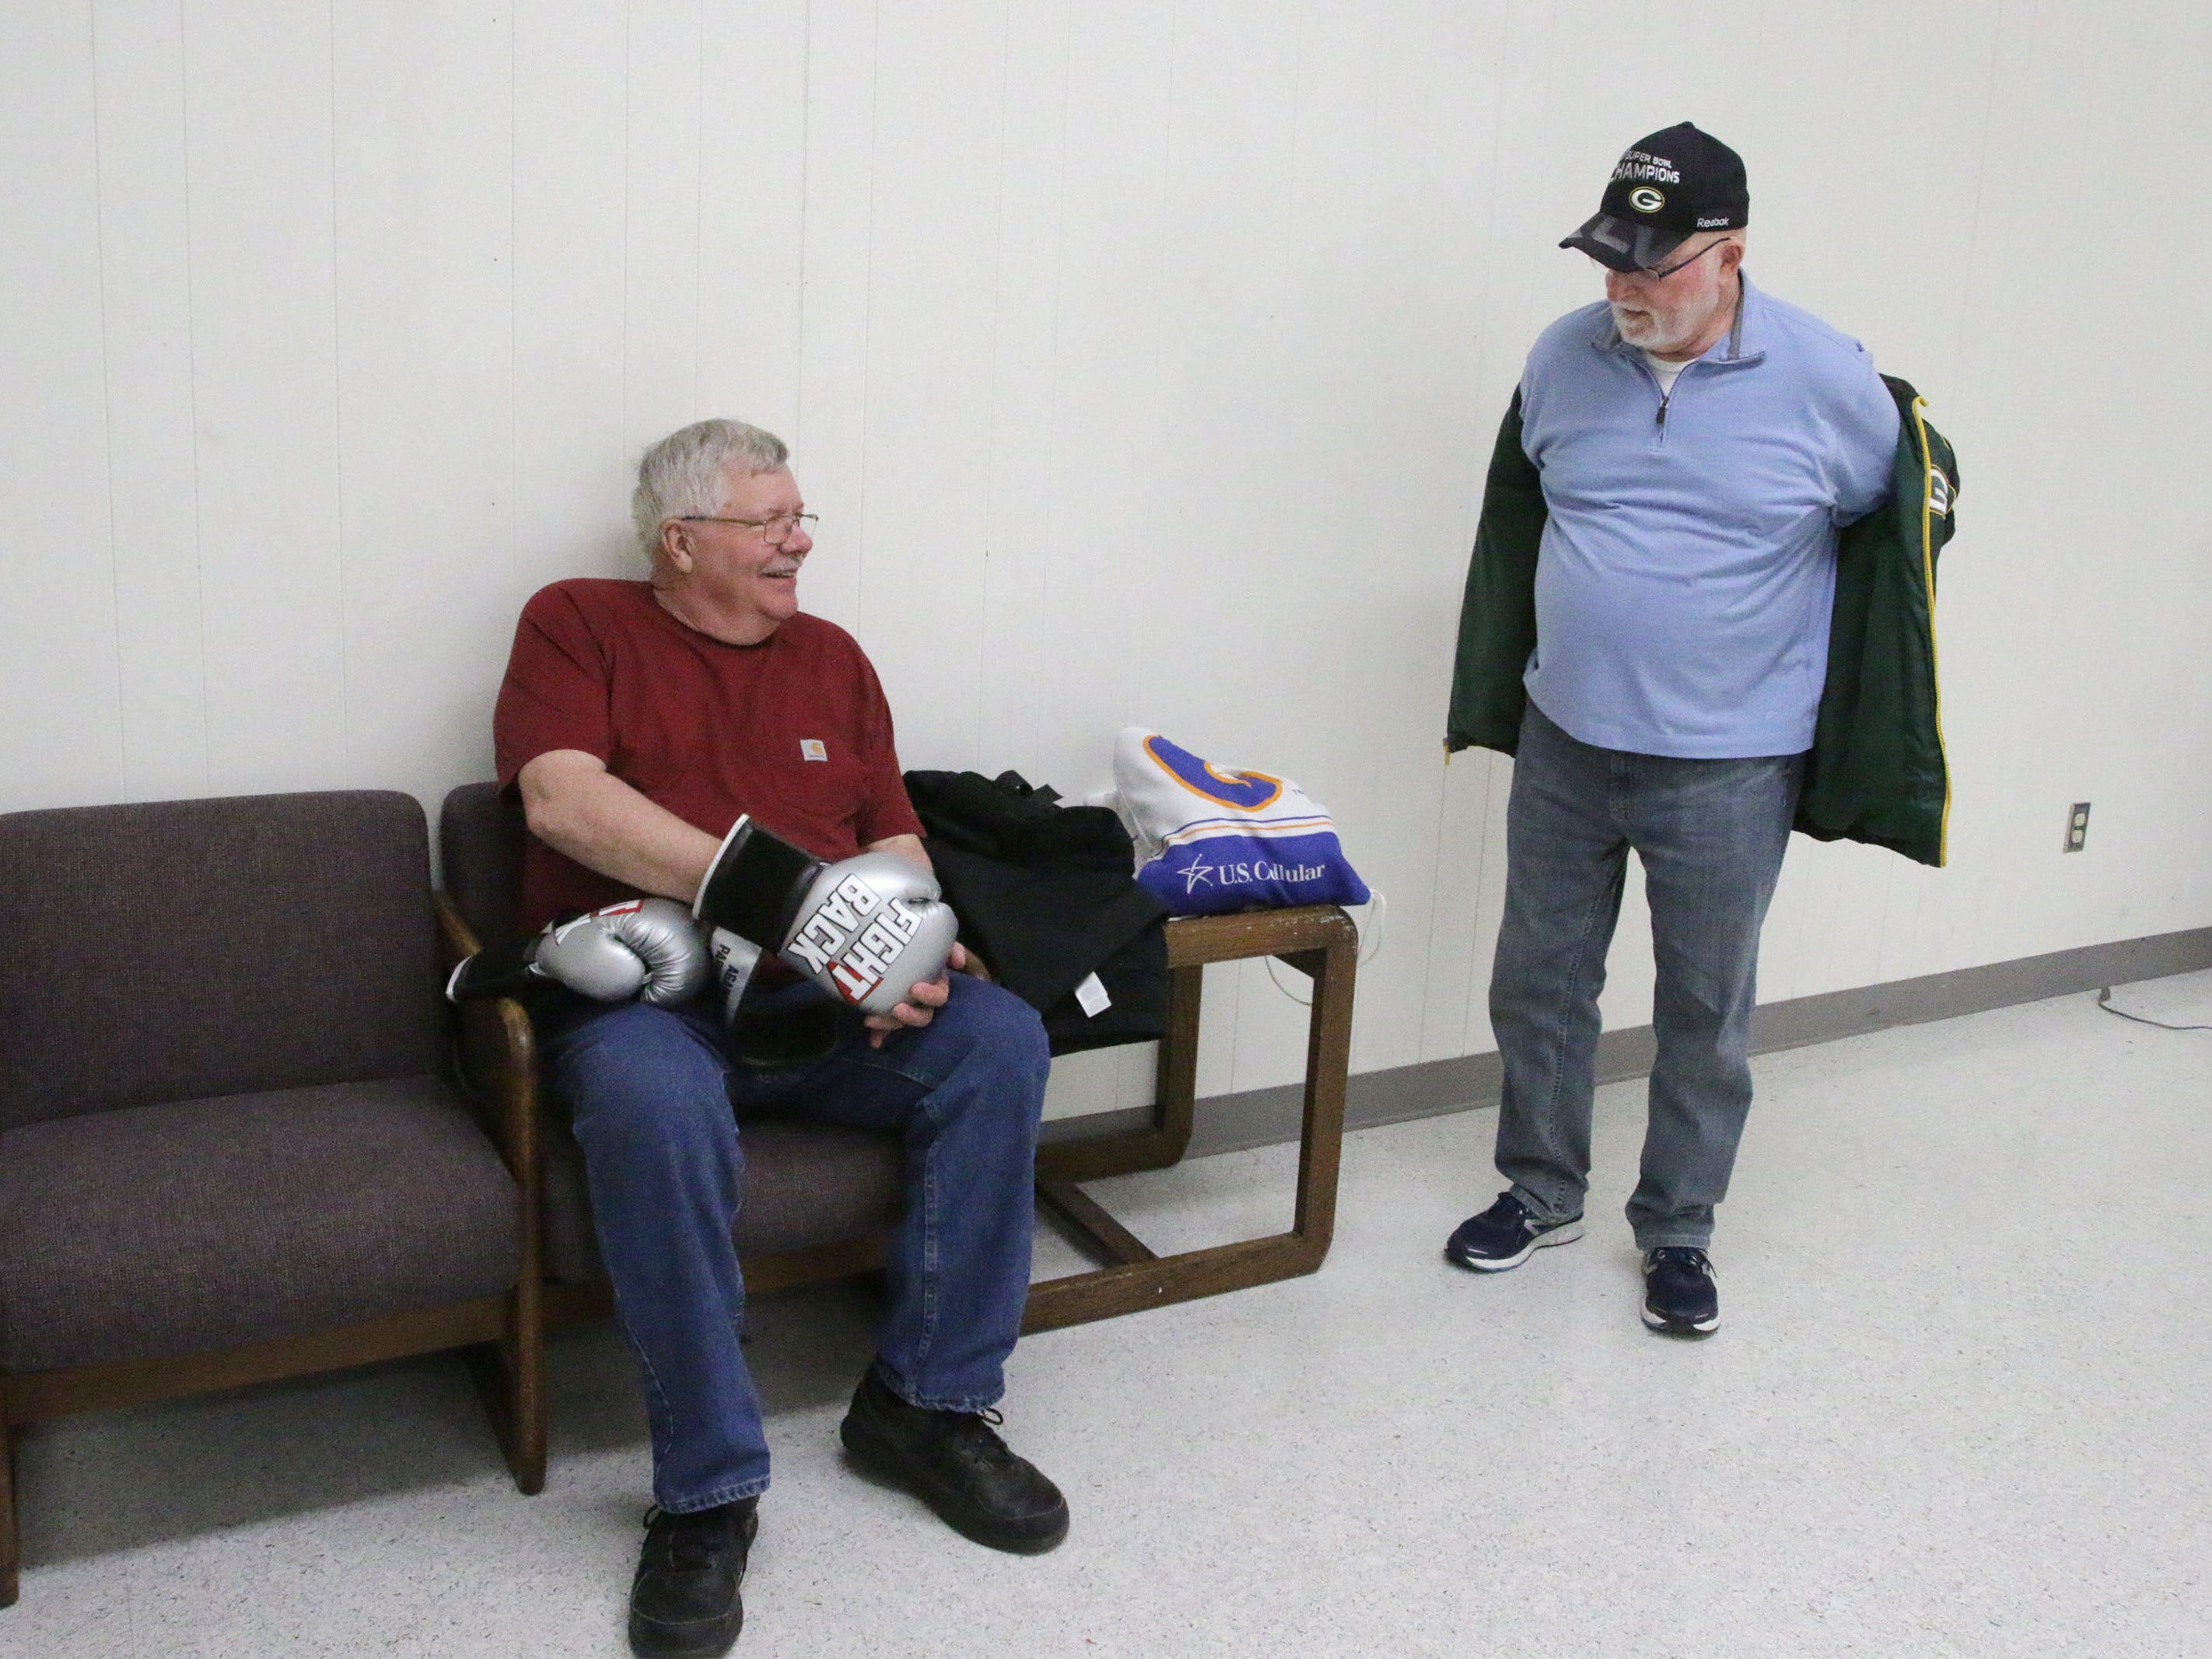 Ralph Worm of Sheboygan, left, shares a light moment before the YMCA Fighting Parkinson's class with Ken Pipping of Elkhart Lake, Tuesday, March 26, 2019, in Sheboygan, Wis.